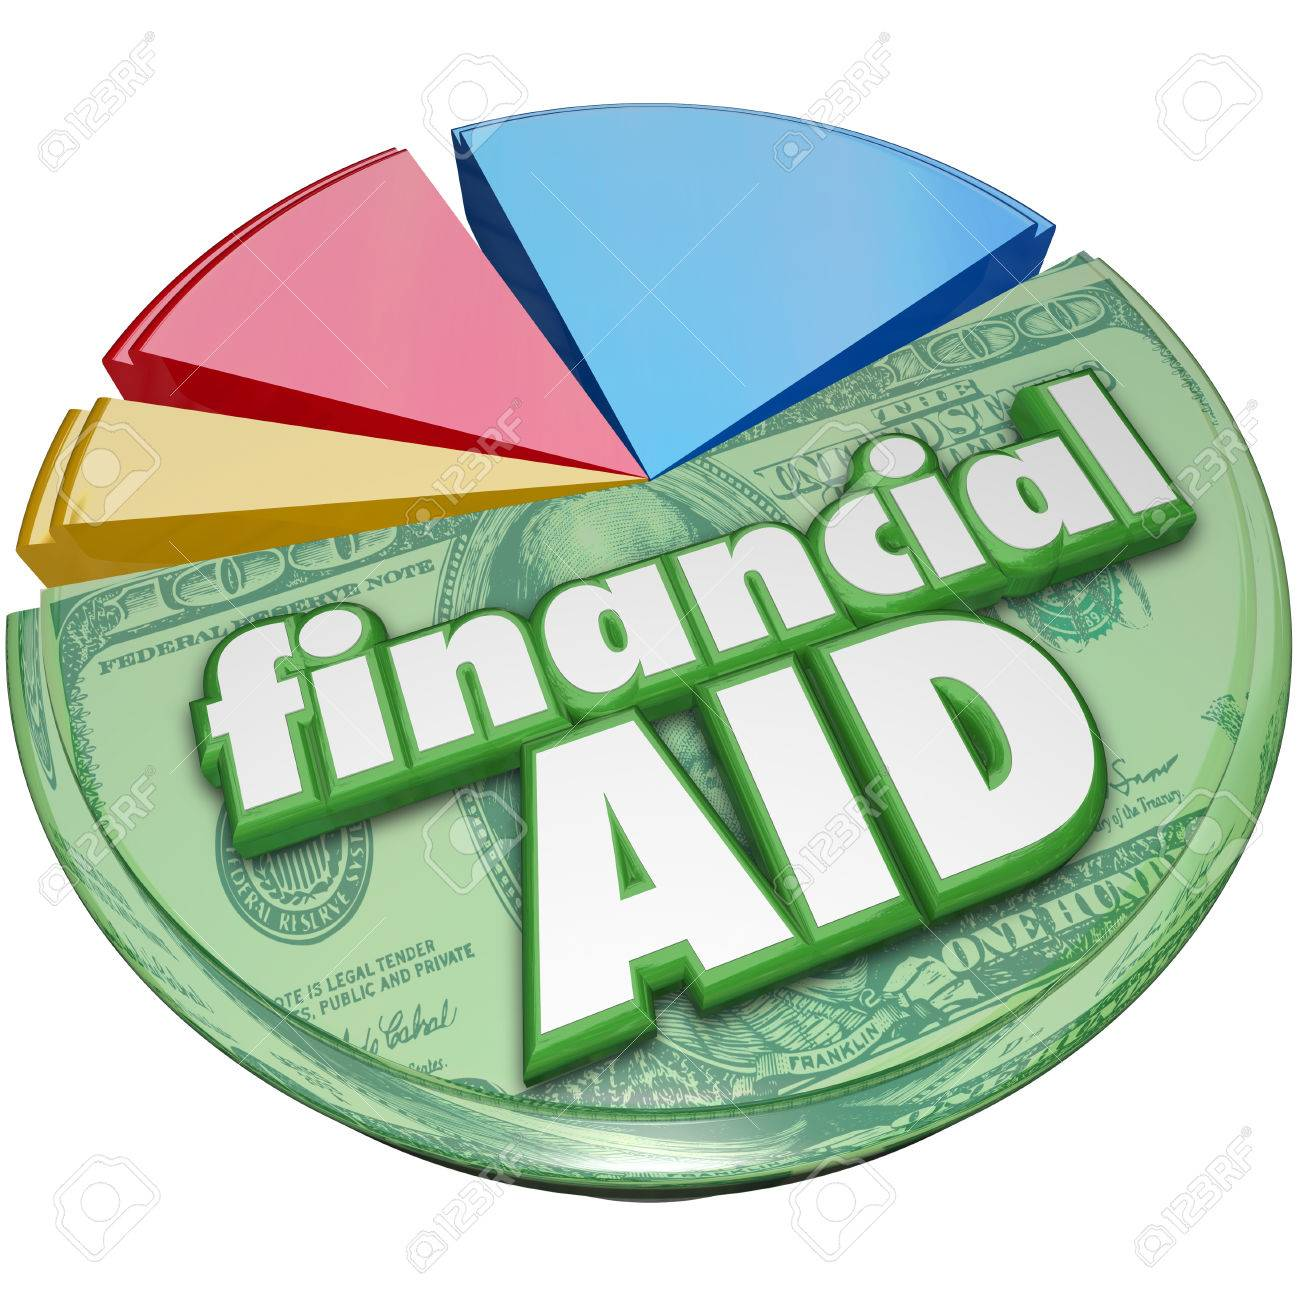 Financial aid 3d words on a pie chart of money support financial aid 3d words on a pie chart of money support assistance or help nvjuhfo Gallery